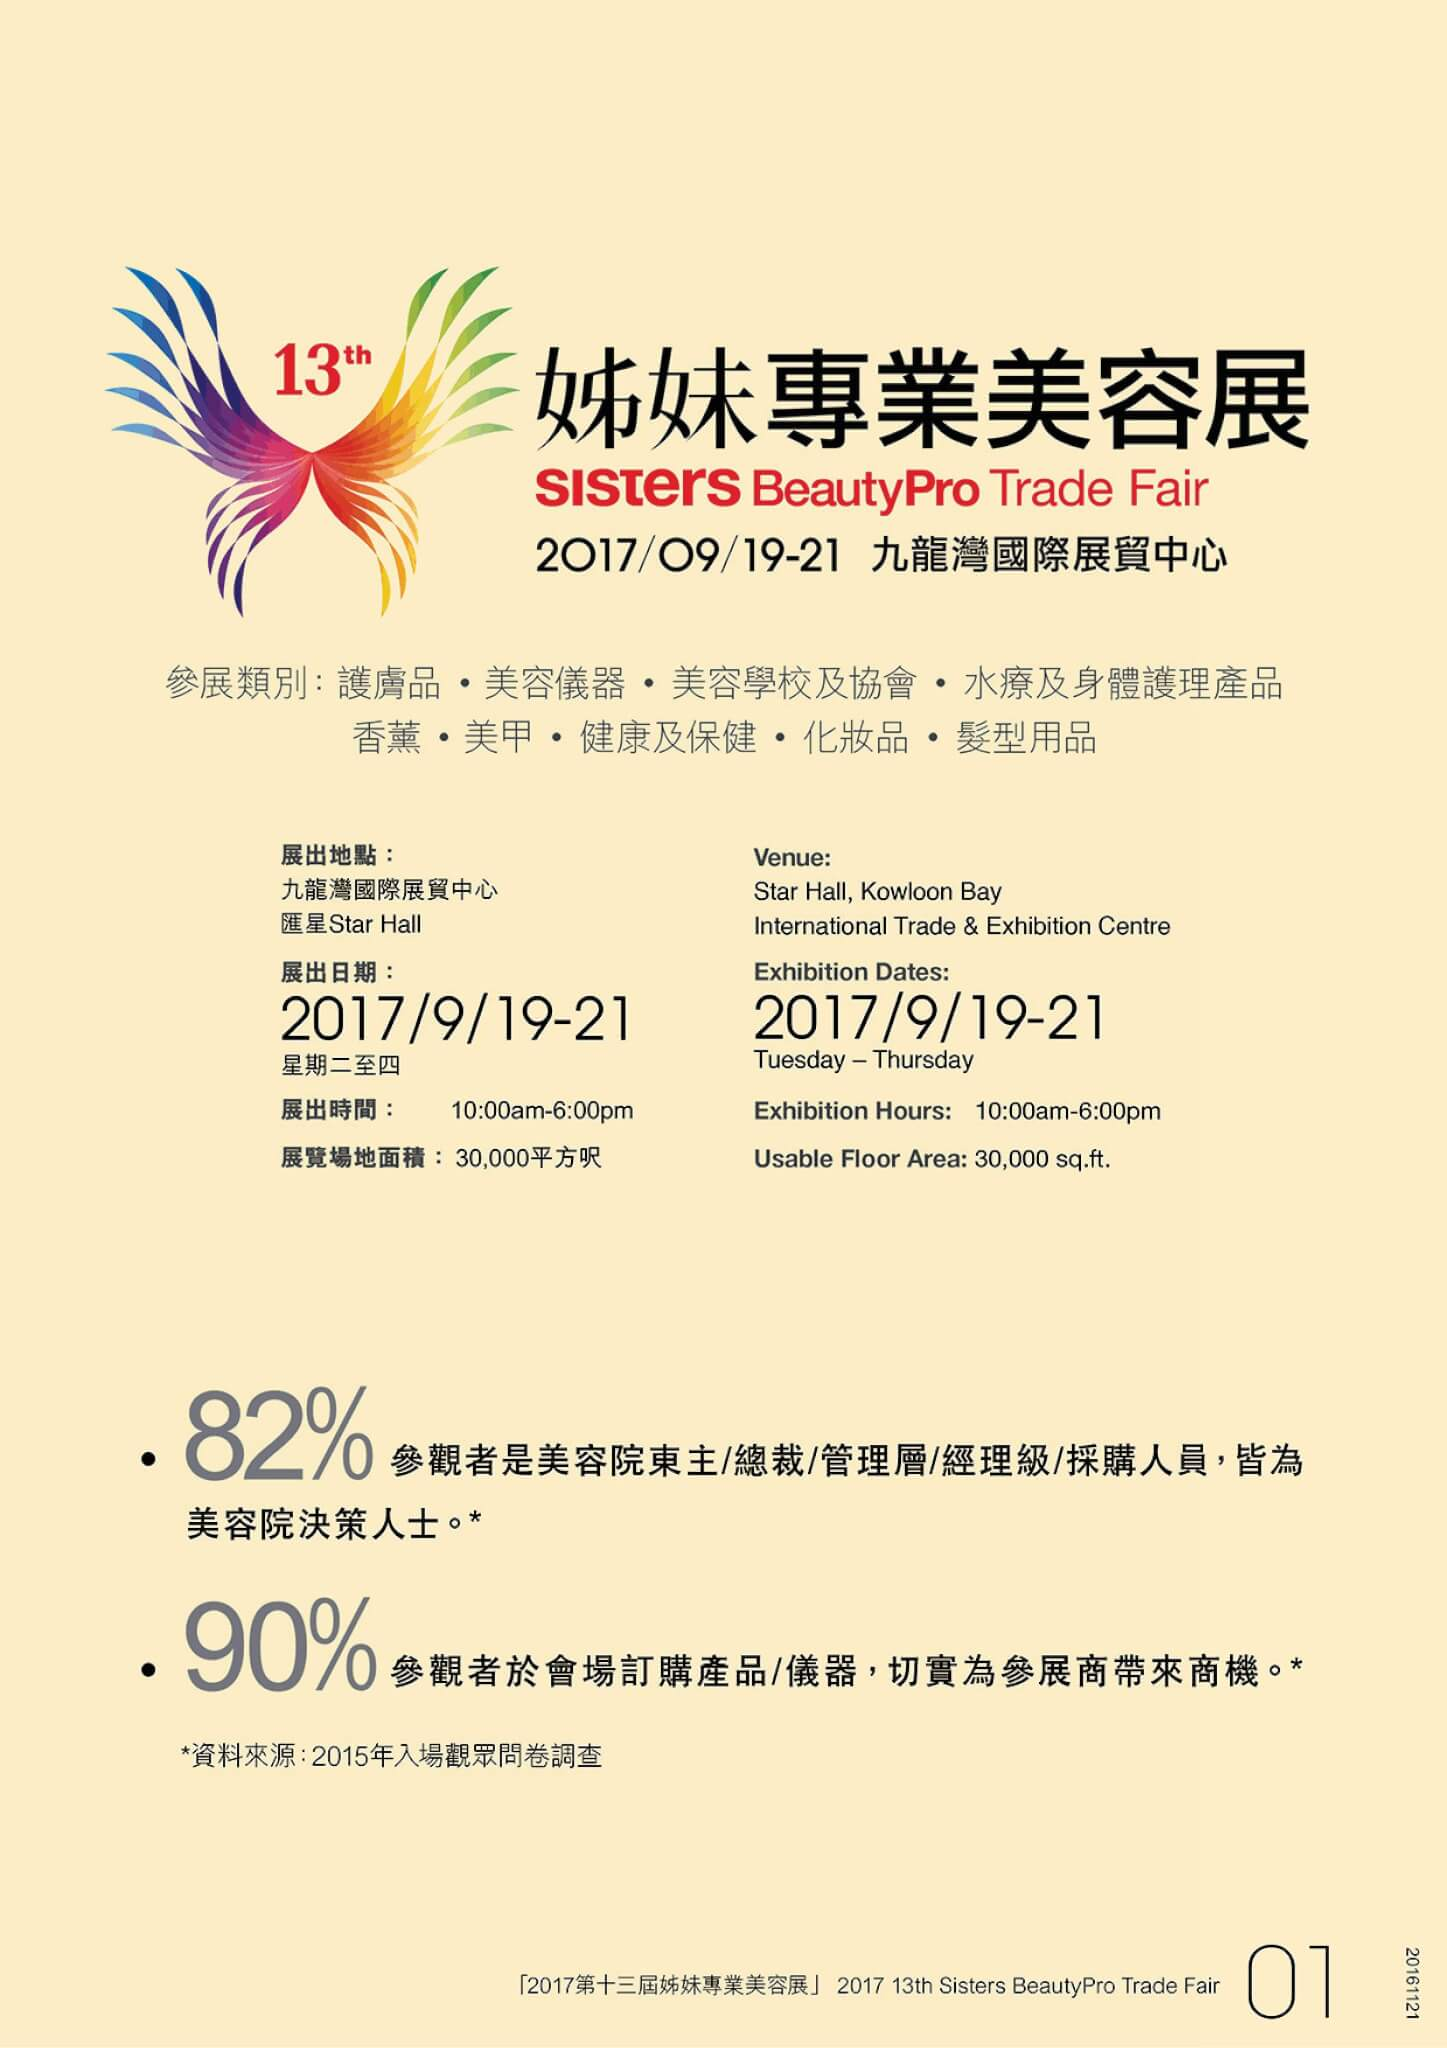 2017_13thSBPTF_Info-page-001